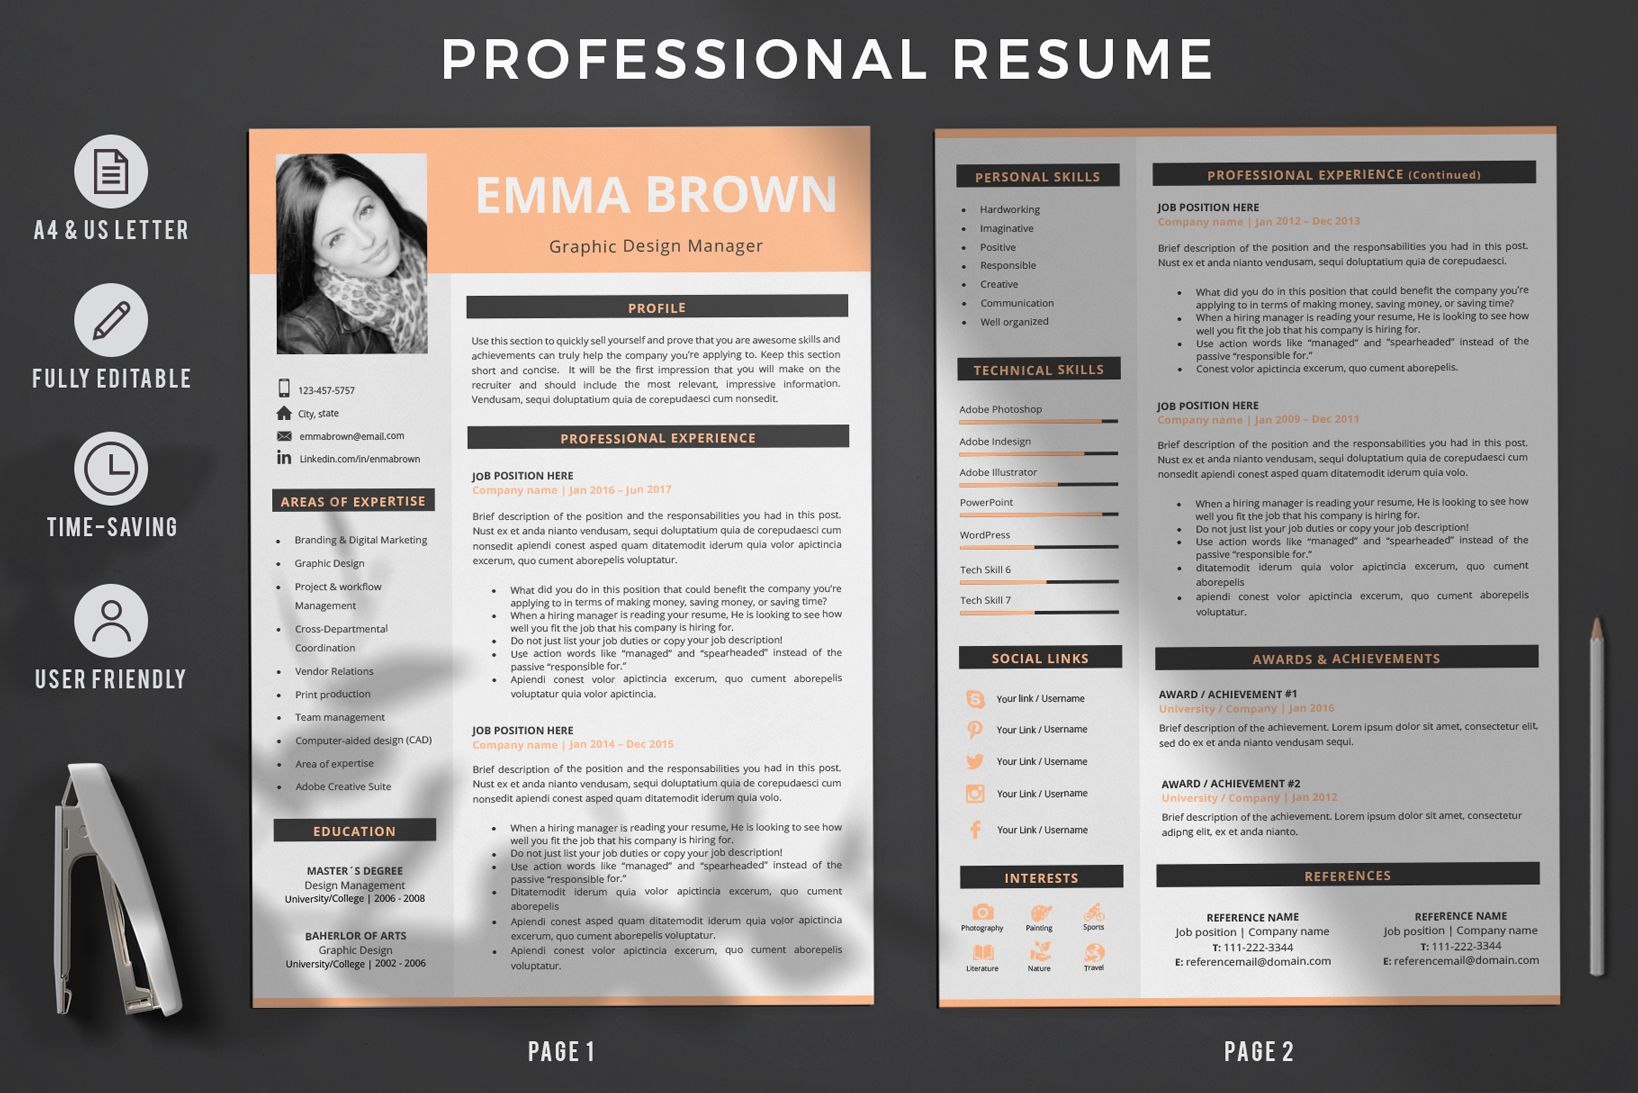 Creative Resume Templates For Ms Word And Mac Pages Professional Resume Templates And Matching Cover Let Resume Design Template Modern Cv Template Cv Template